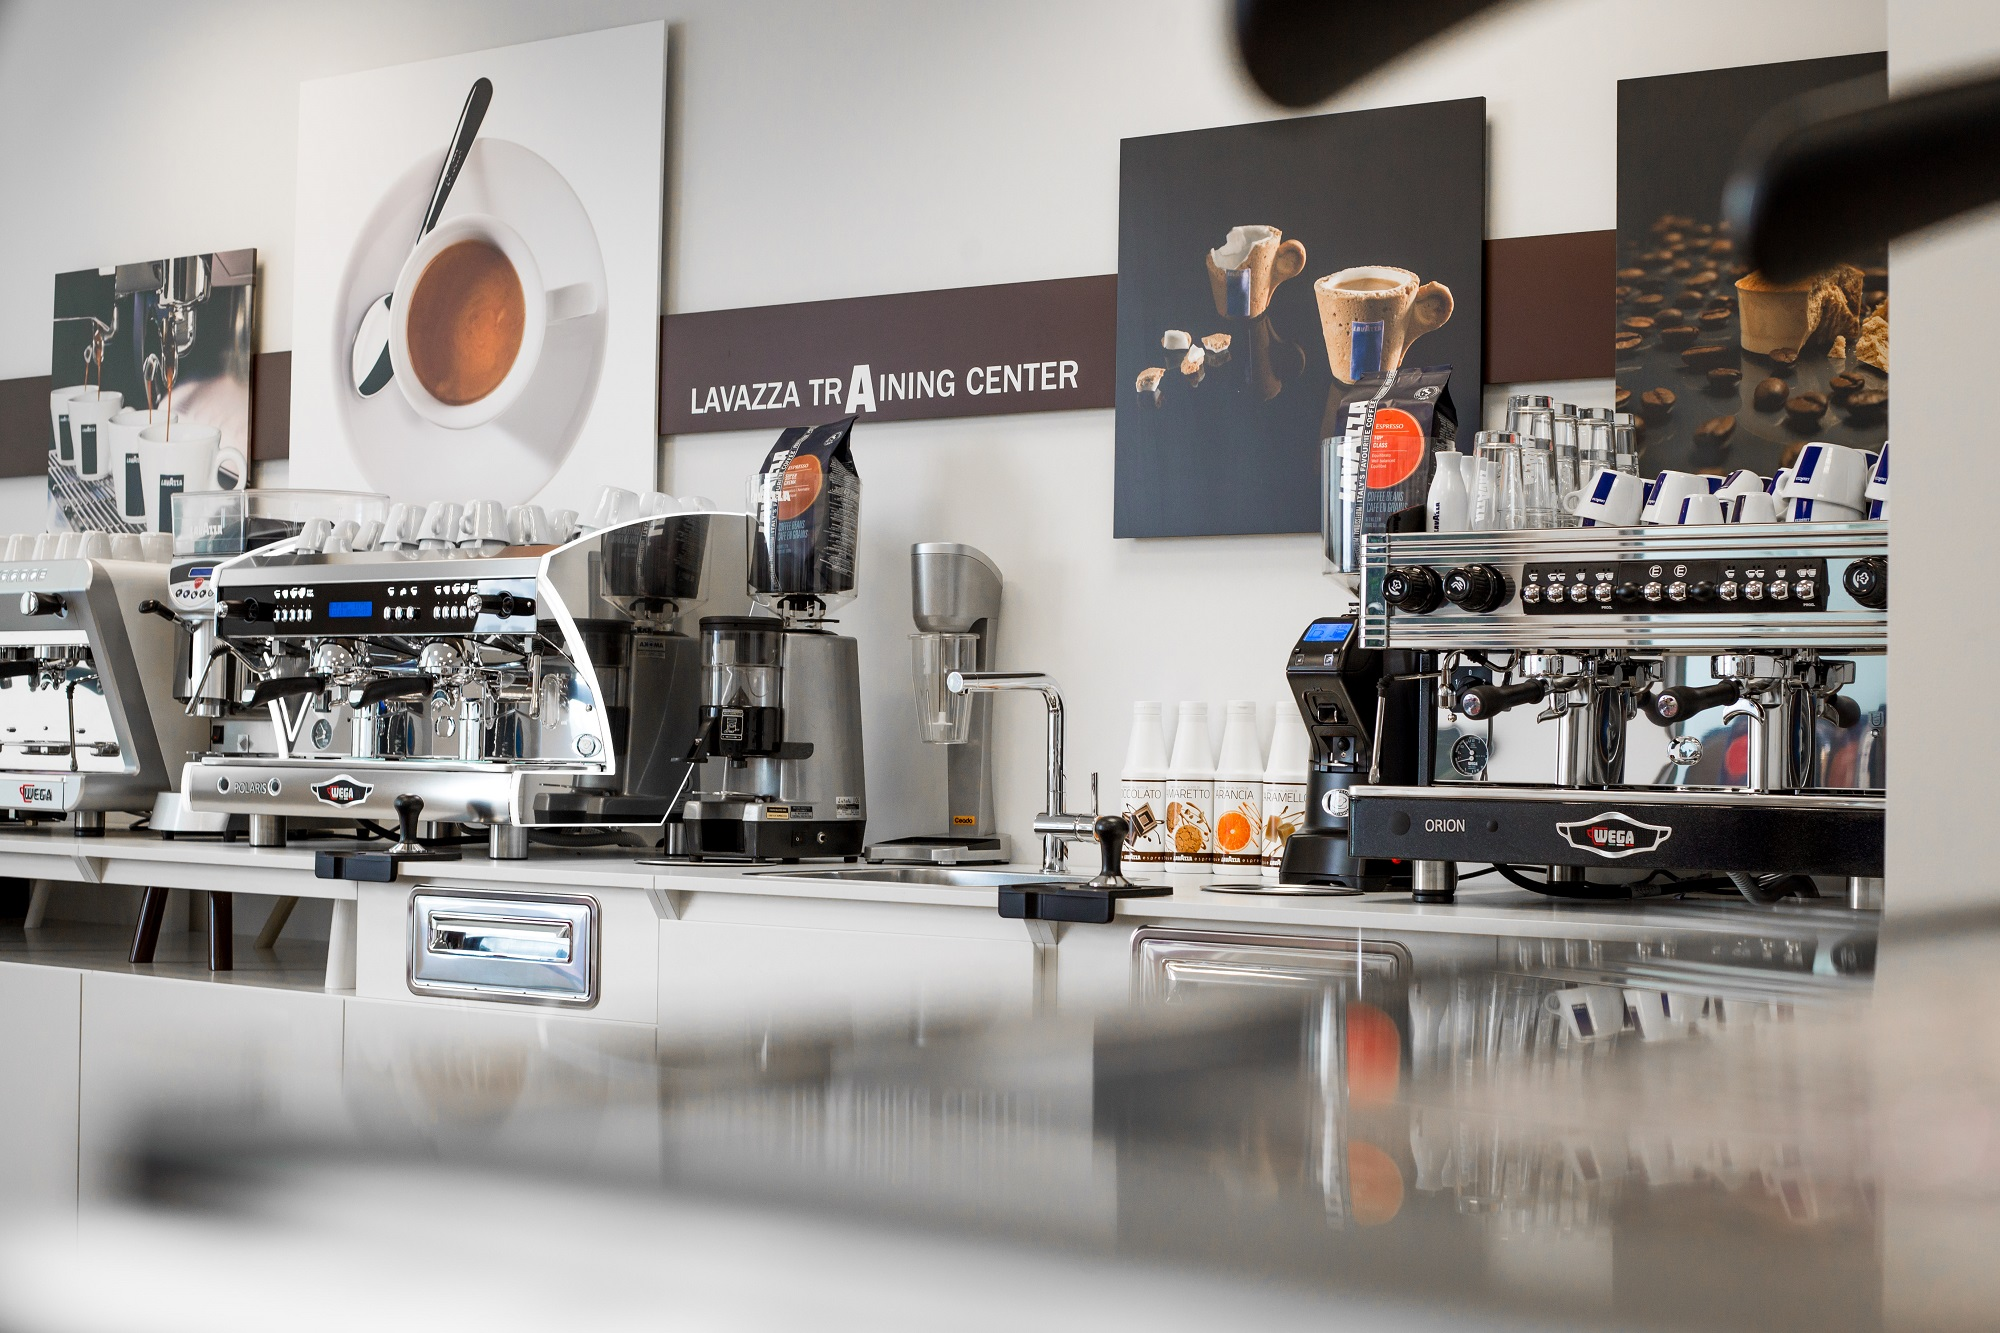 Lavazza Training Center